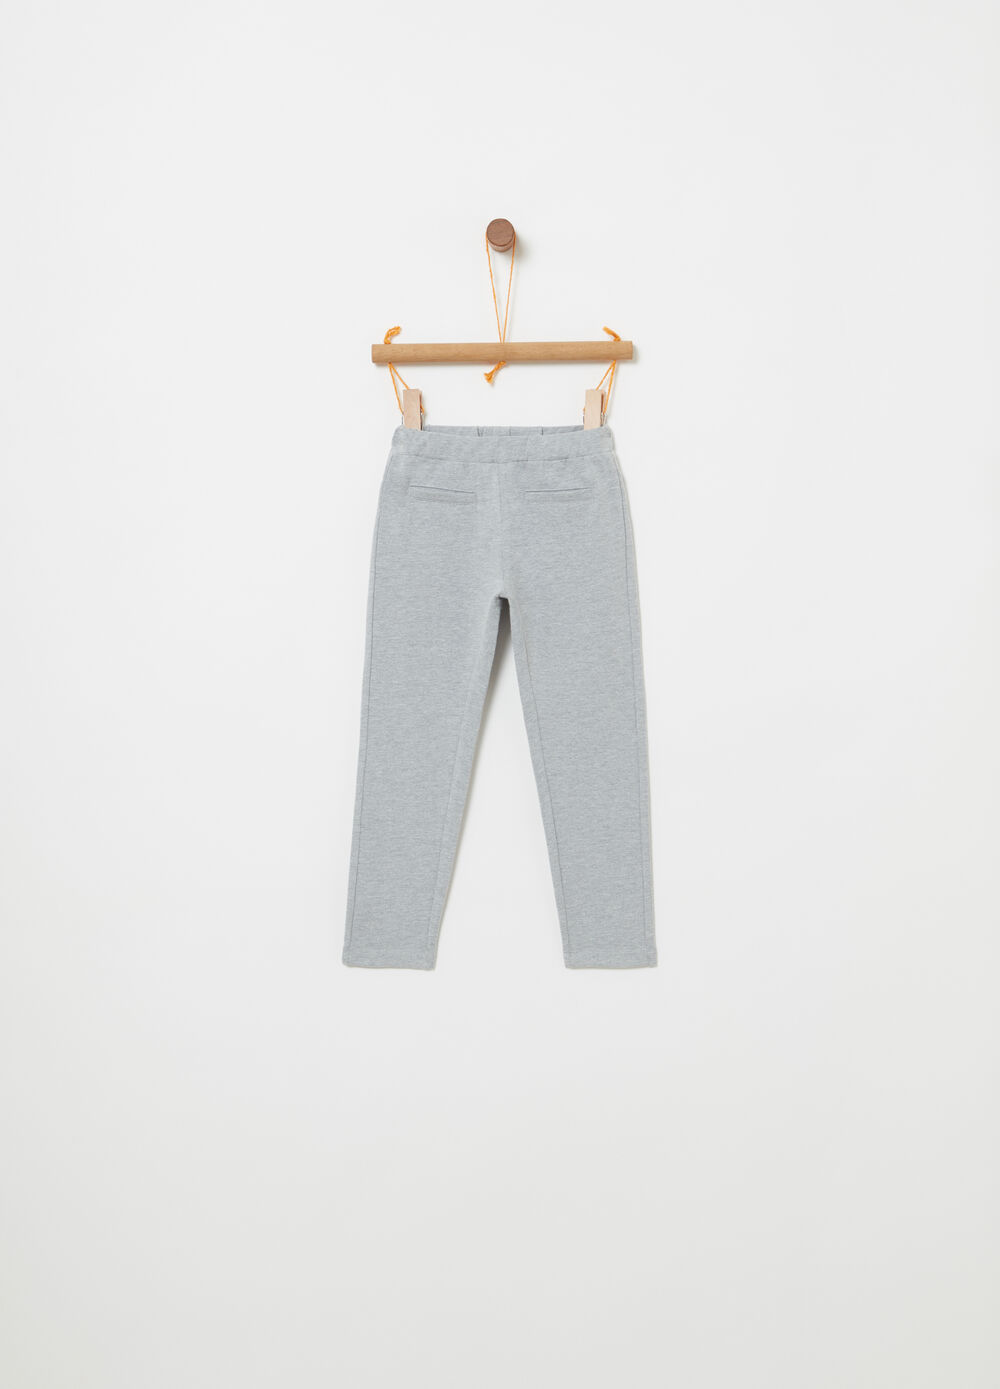 Trousers in non-brushed French Terry fleece